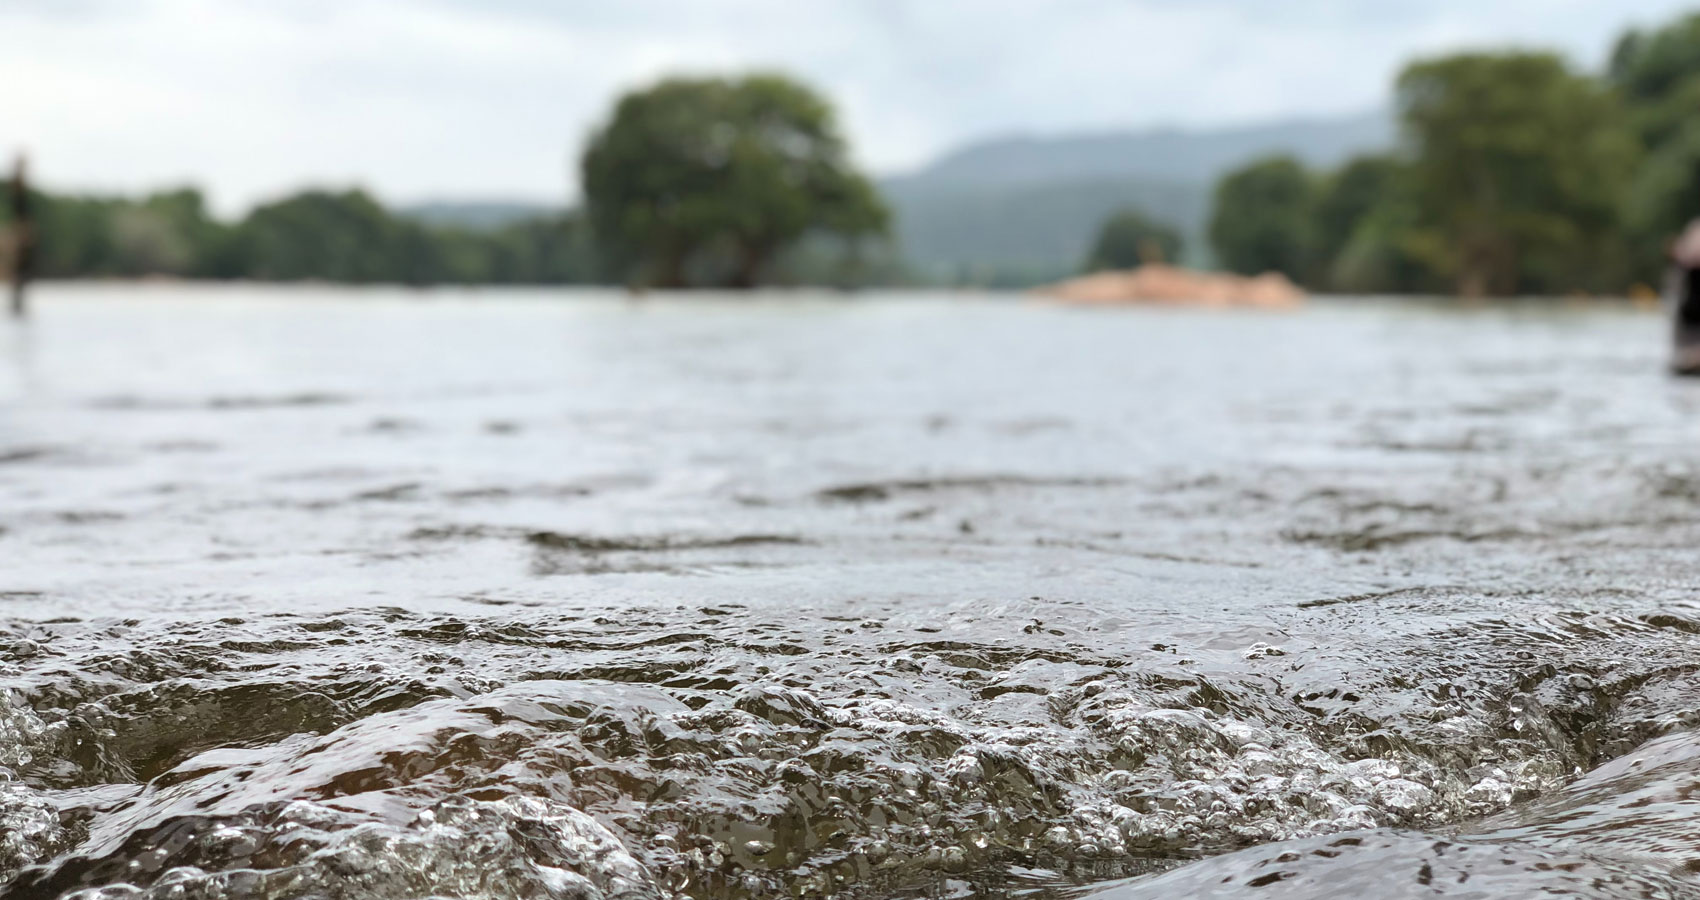 After The Floods, poetry by Dr. MOLLY JOSEPH at Spillwords.com